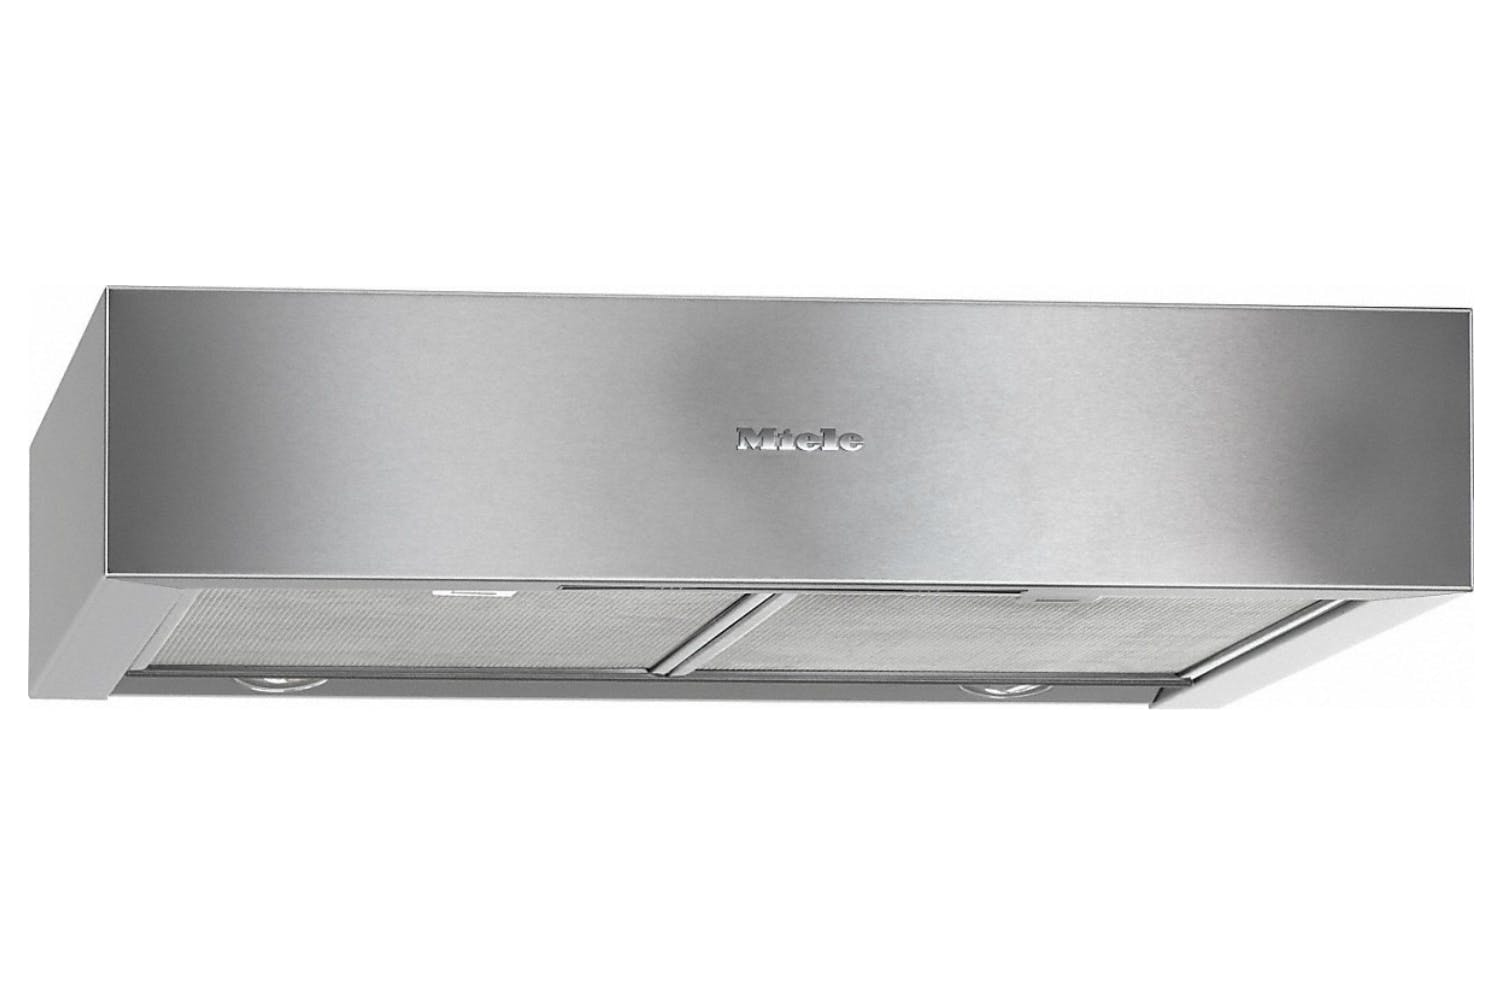 Miele DA 1260  Built-under cooker hood   with energy-efficient LED lighting and sliding switch for simple operation